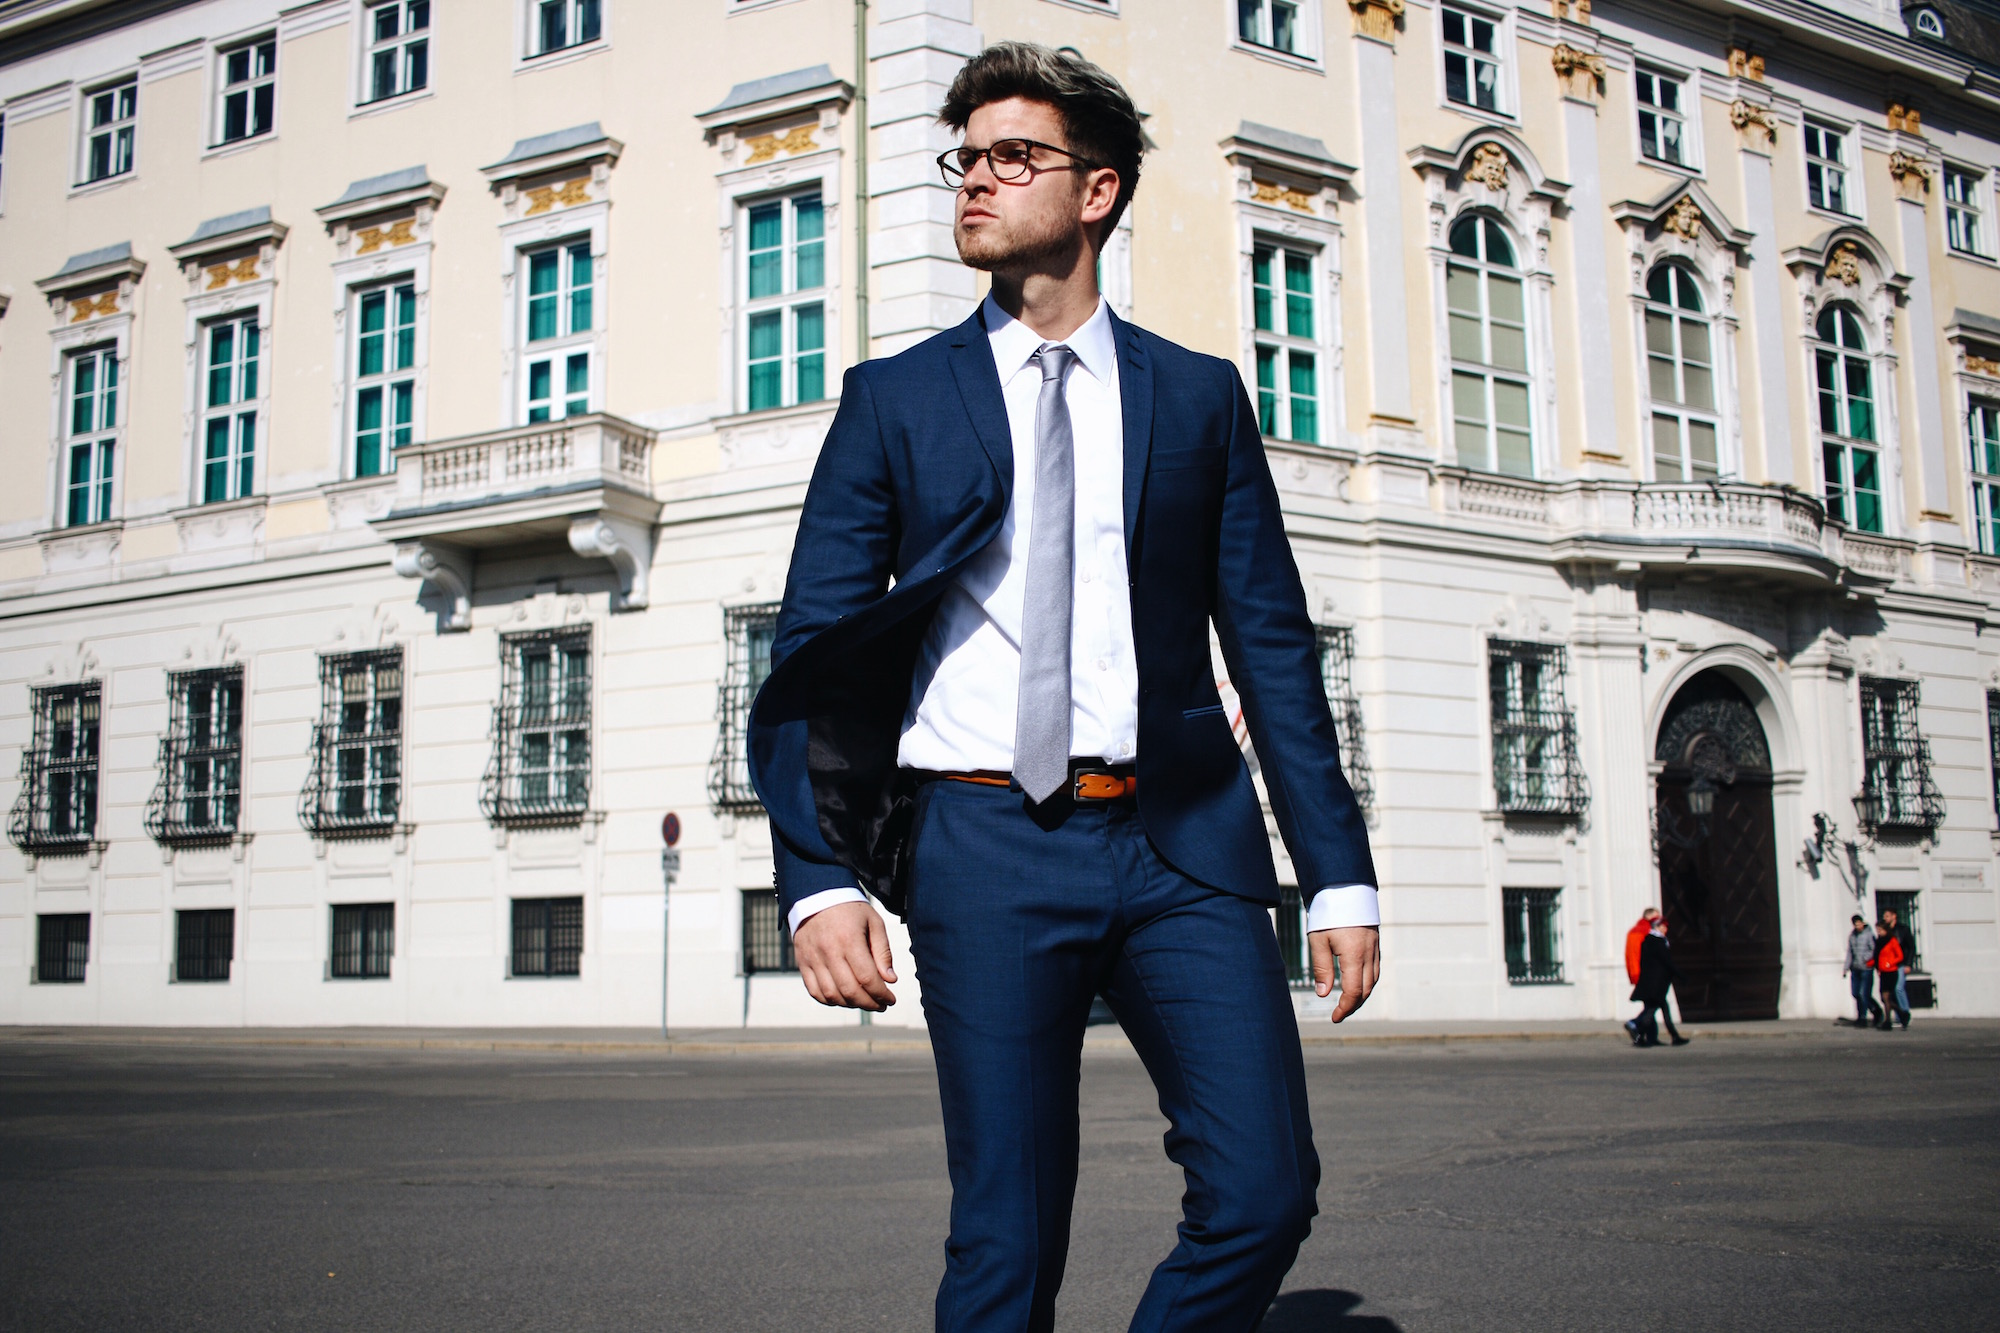 Tiger-Of-Sweden-Suit-Mix-Match_Three-ways-to-wear-a-suit_Meanwhile-in-Awesometown_Austrian-Mens-Fashion-and-Lifestyle-Blogger15